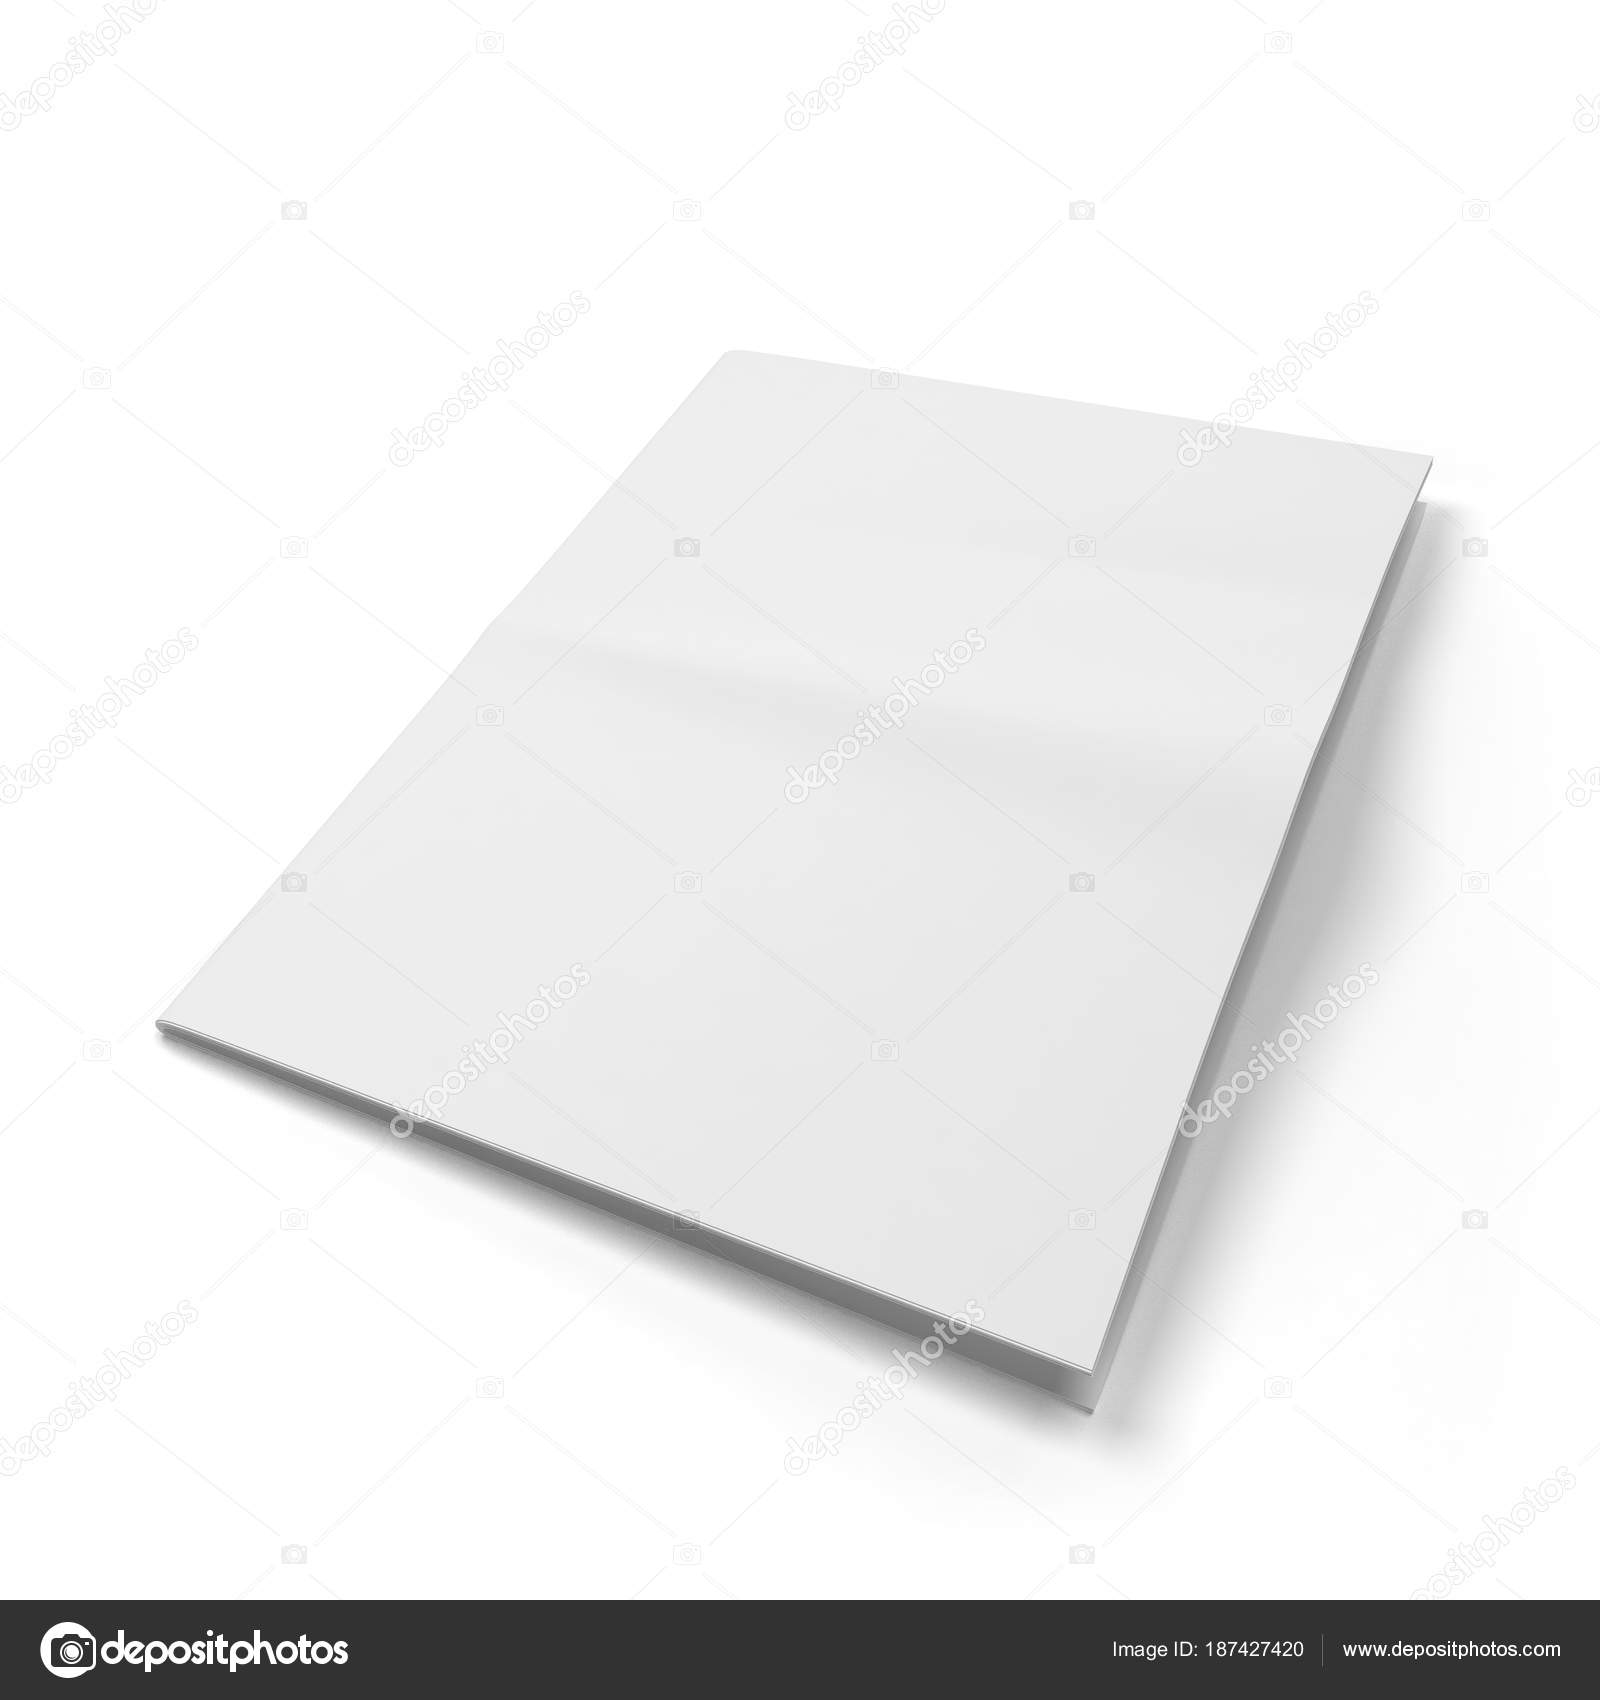 Blank newspaper template     Stock Photo      montego  187427420 Blank newspaper template     Stock Photo